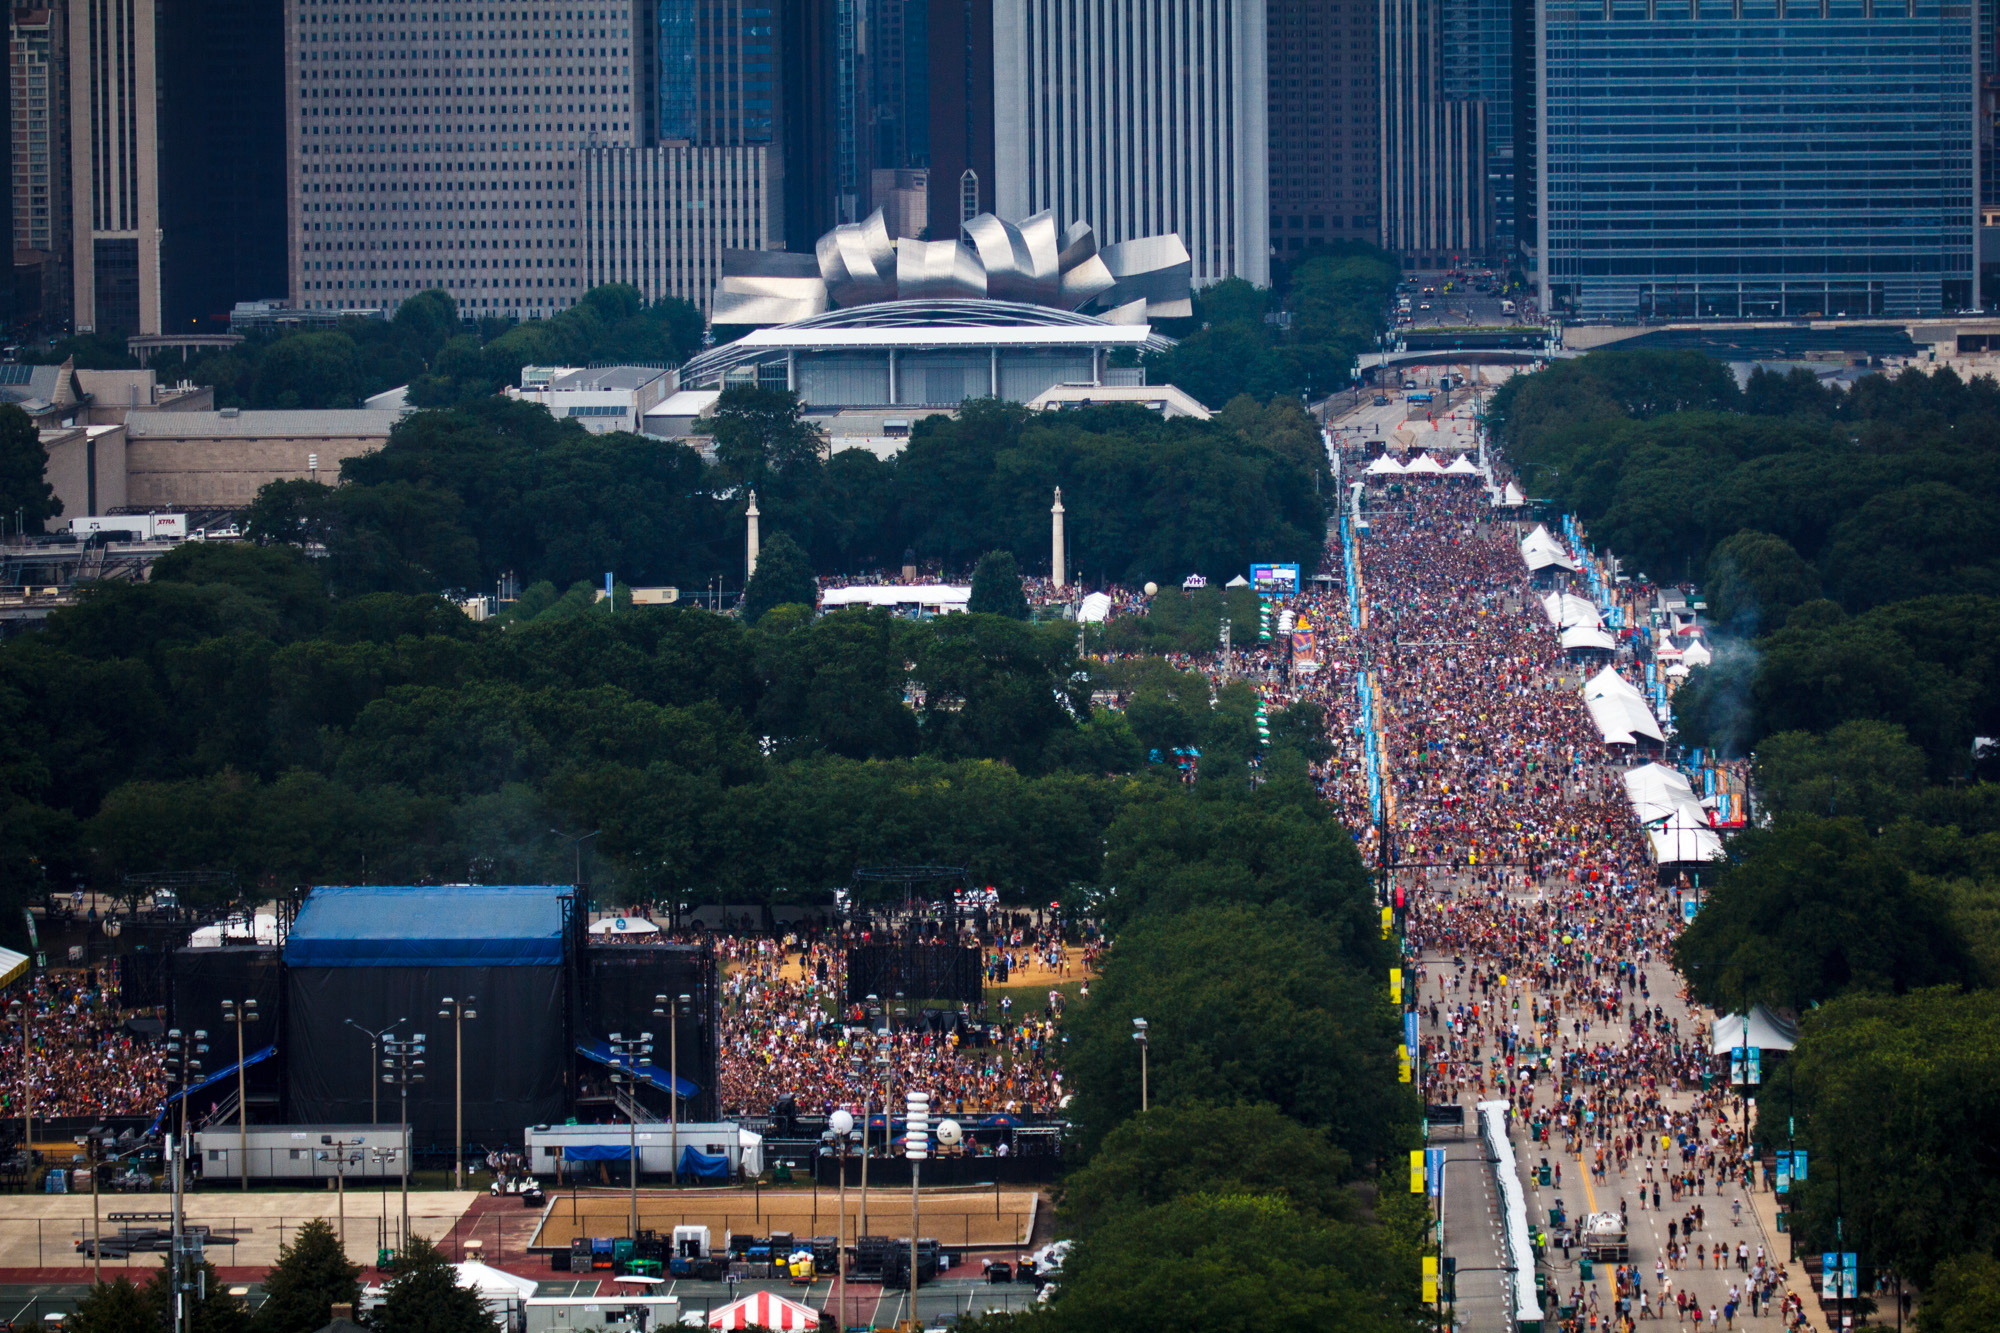 Lollapalooza music festival in Grant Park.